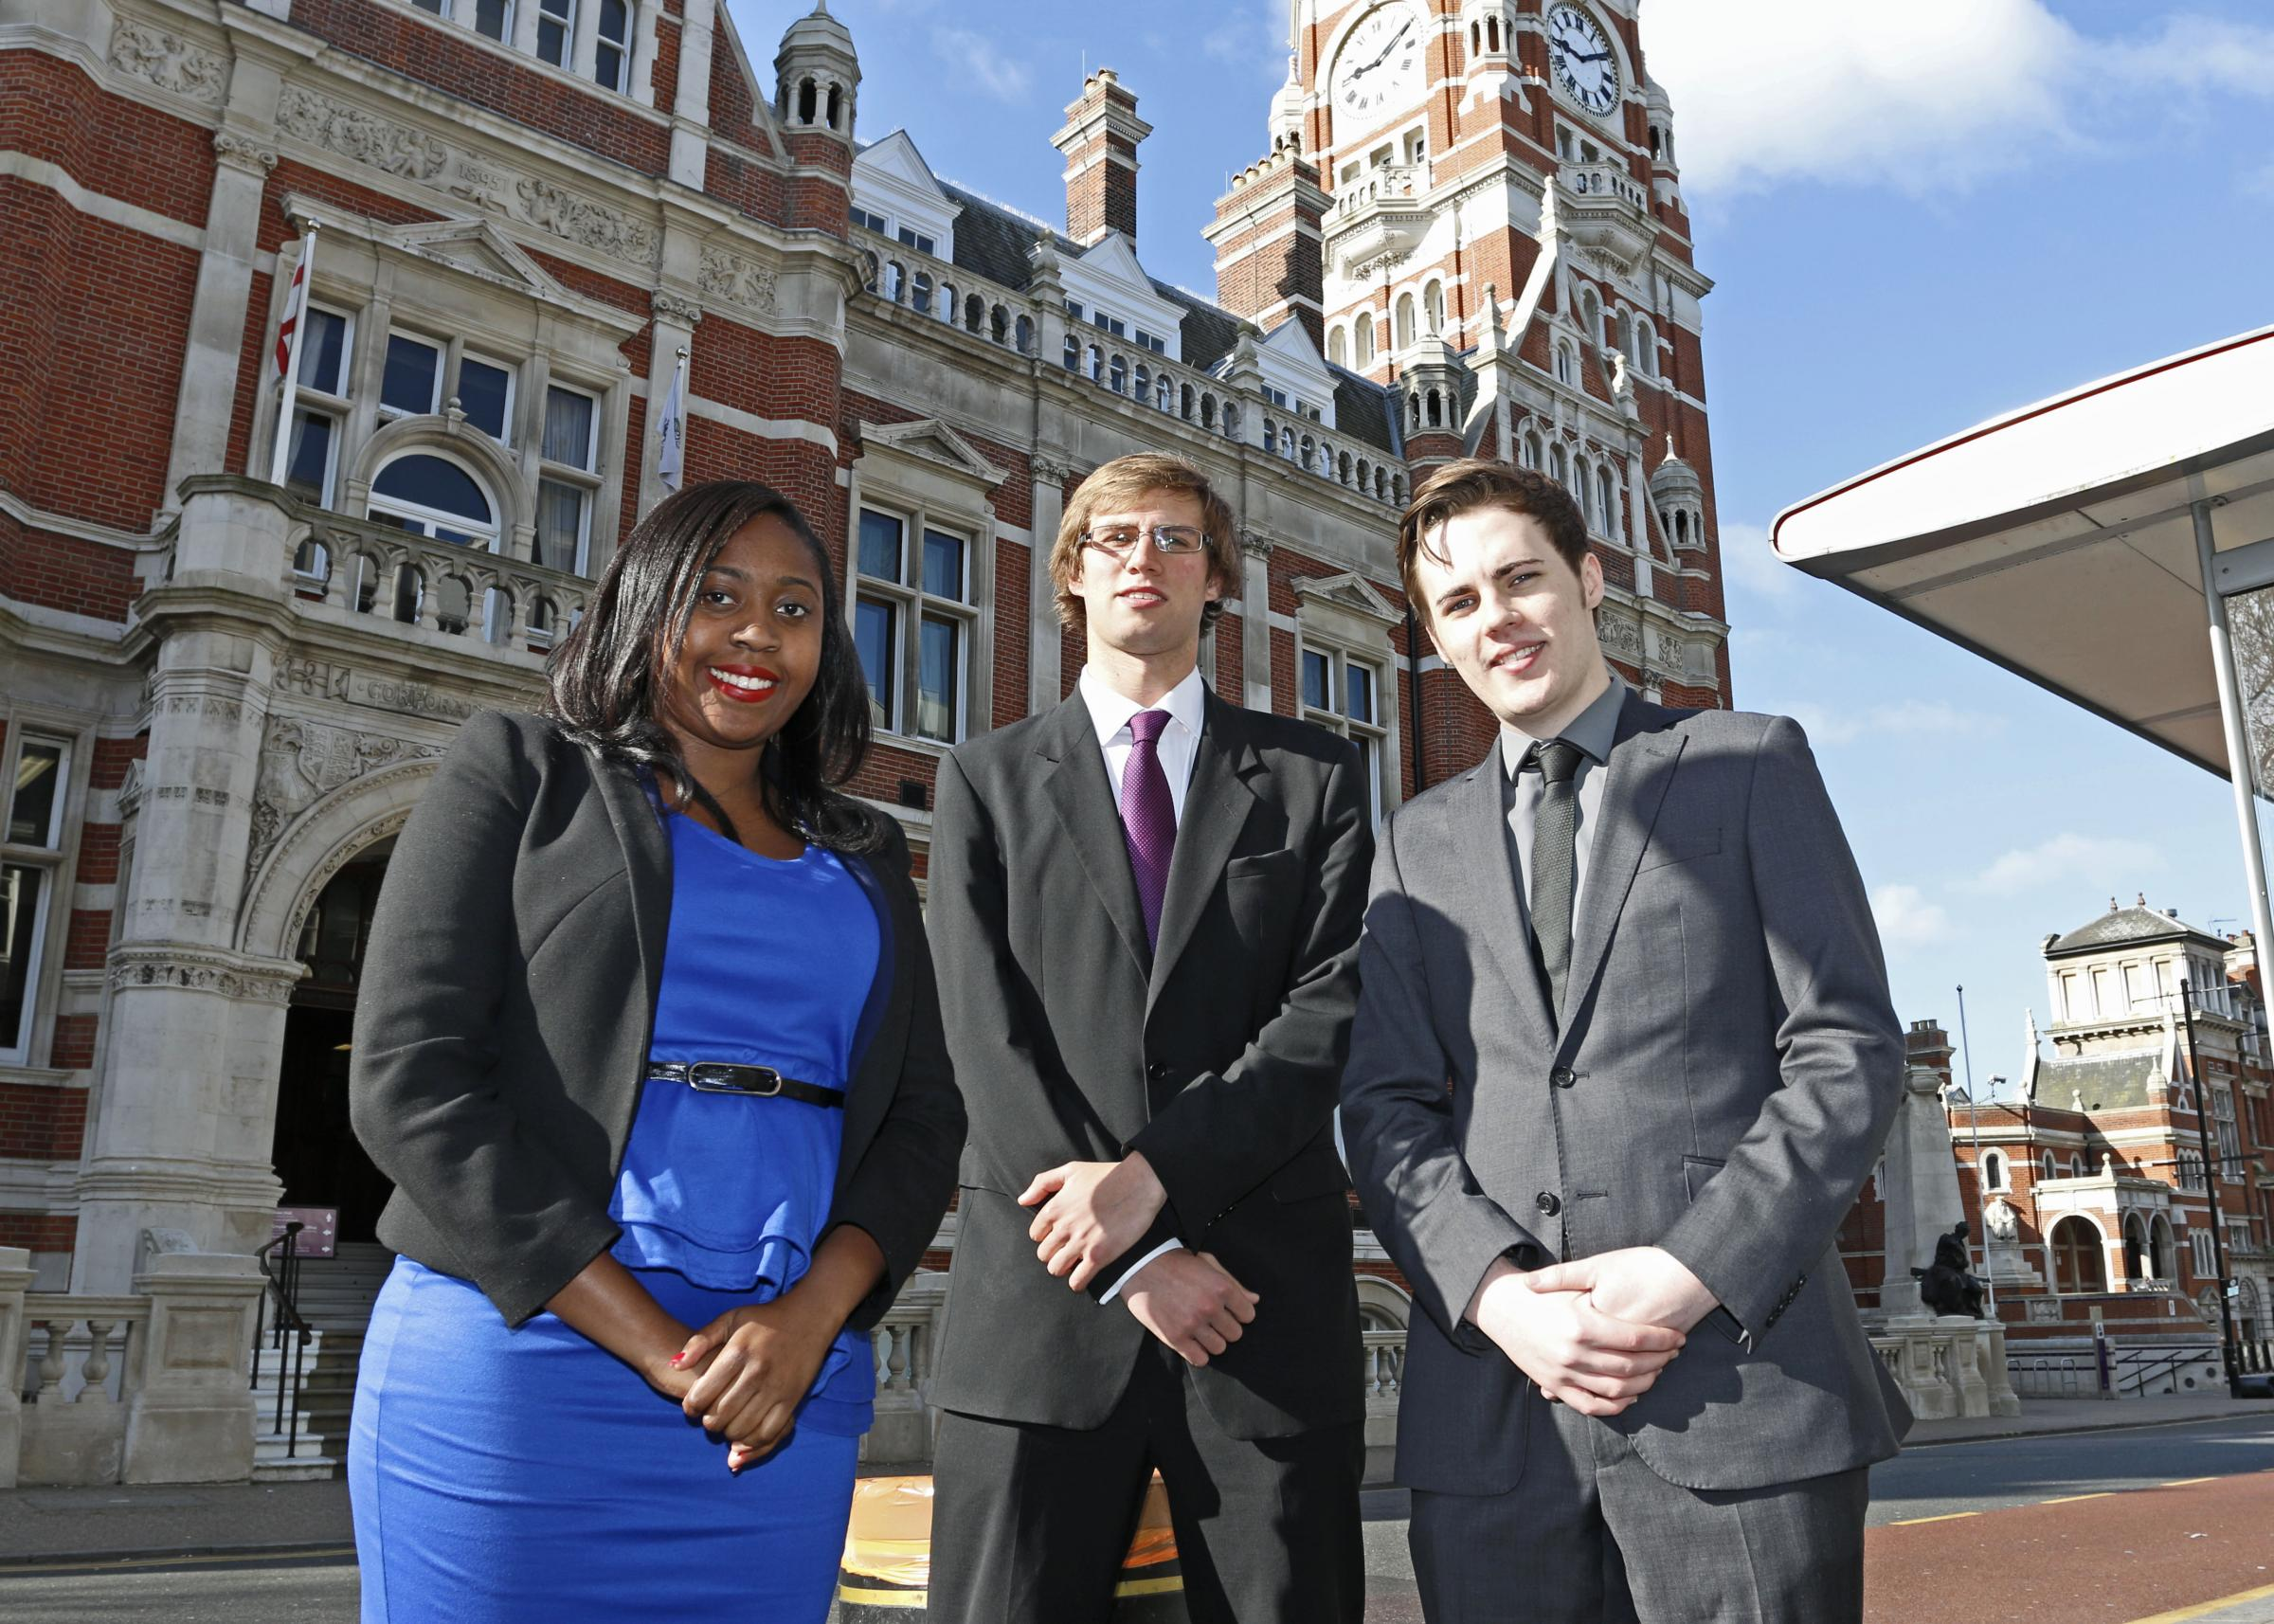 Croydon's youngest candidates want more young people to vote